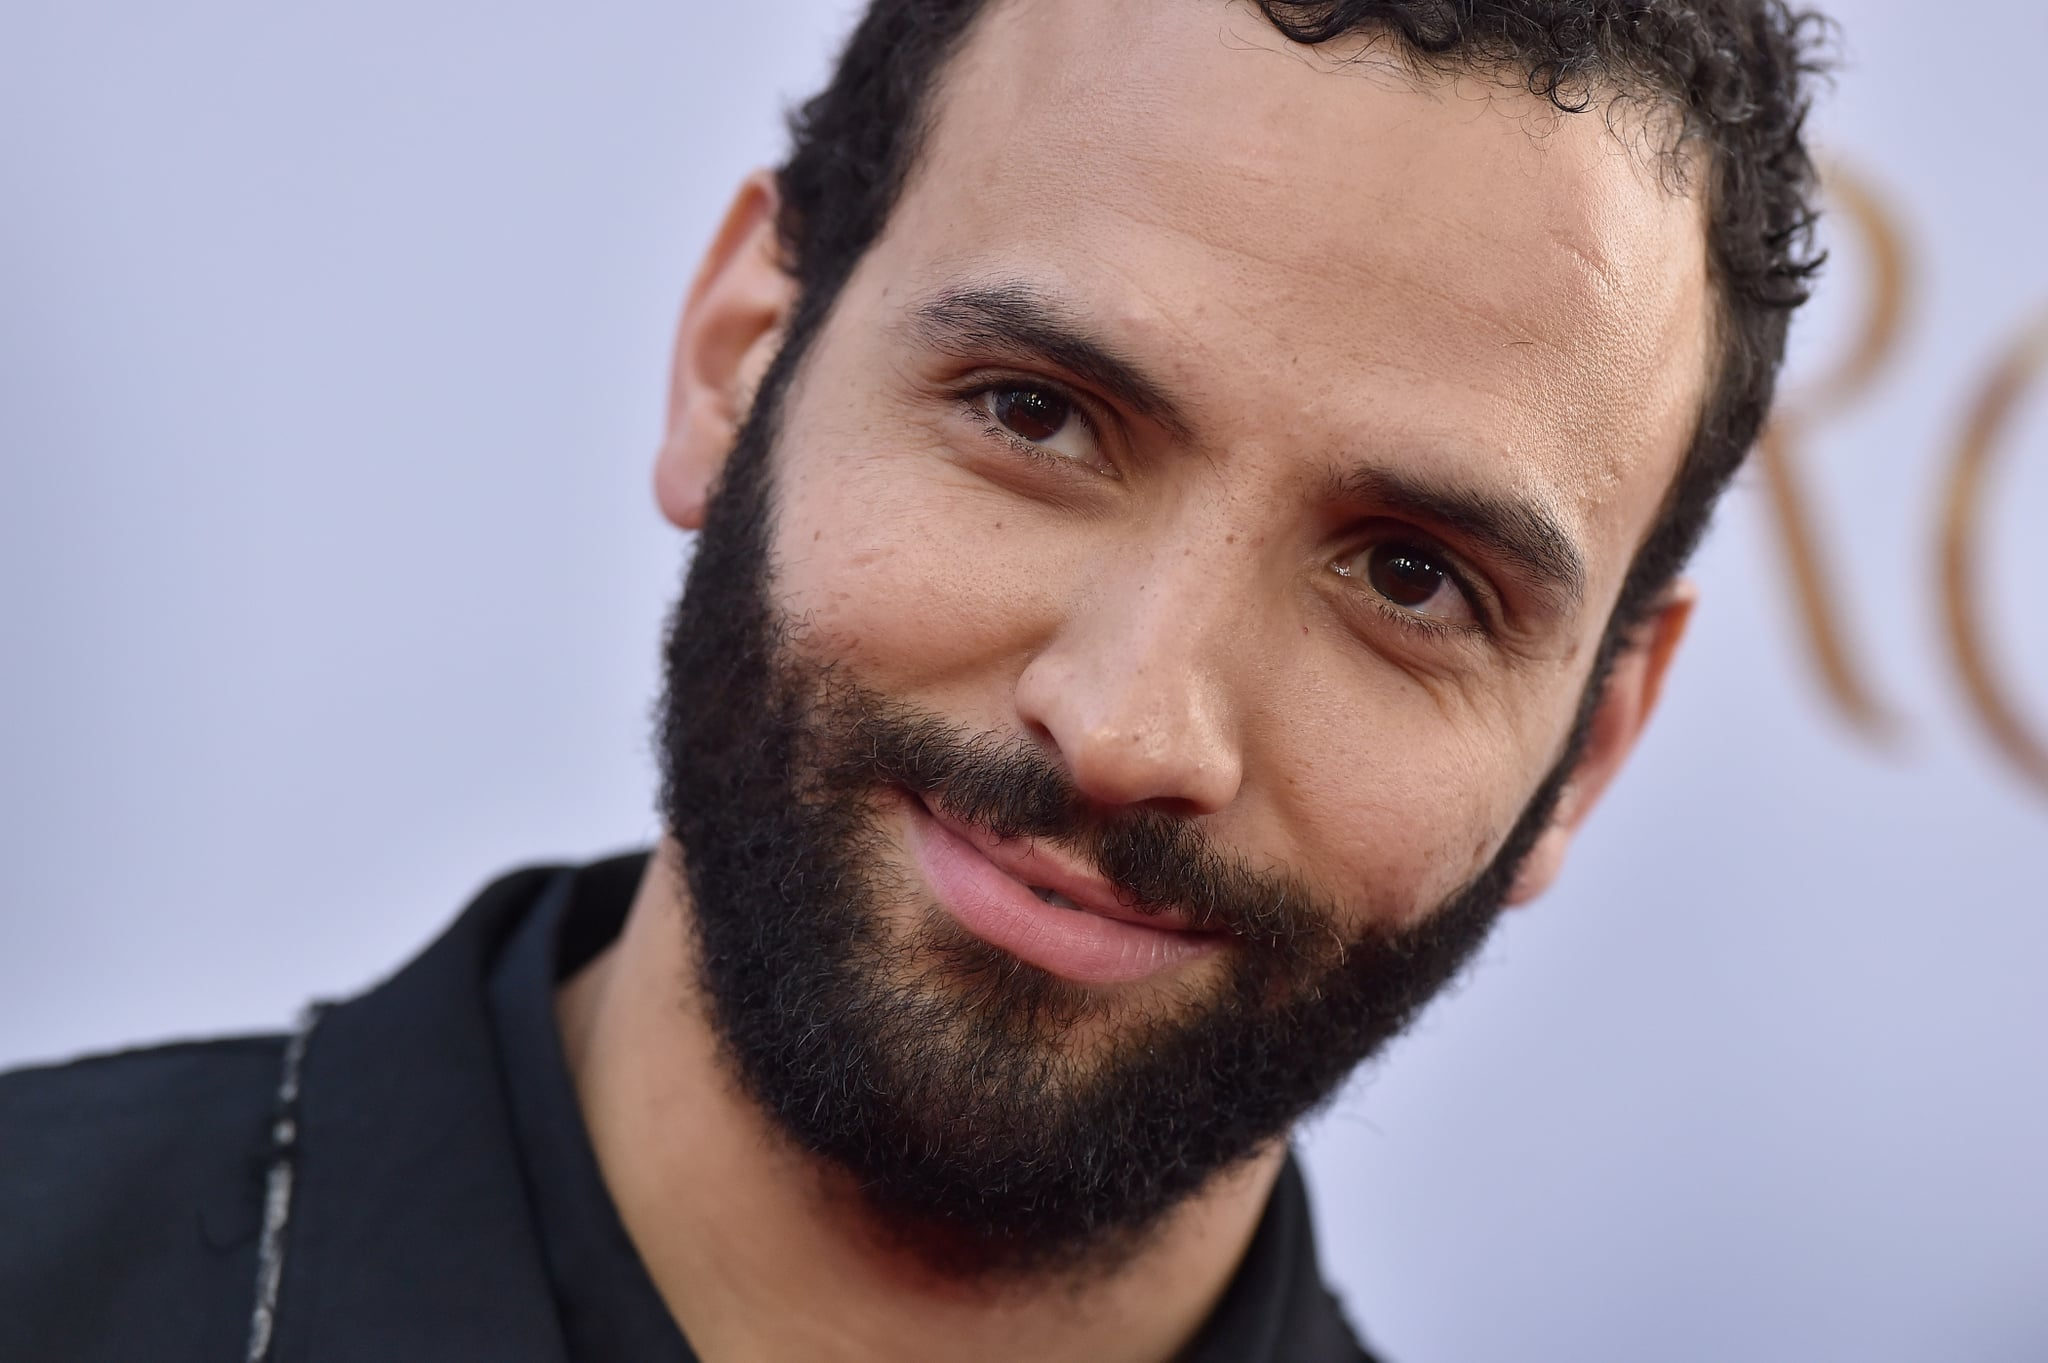 HOLLYWOOD, CA - APRIL 12:  Actor Marwan Kenzari arrives at the Premiere of Open Road Films' 'The Promise' at TCL Chinese Theatre on April 12, 2017 in Hollywood, California.  (Photo by Axelle/Bauer-Griffin/FilmMagic)